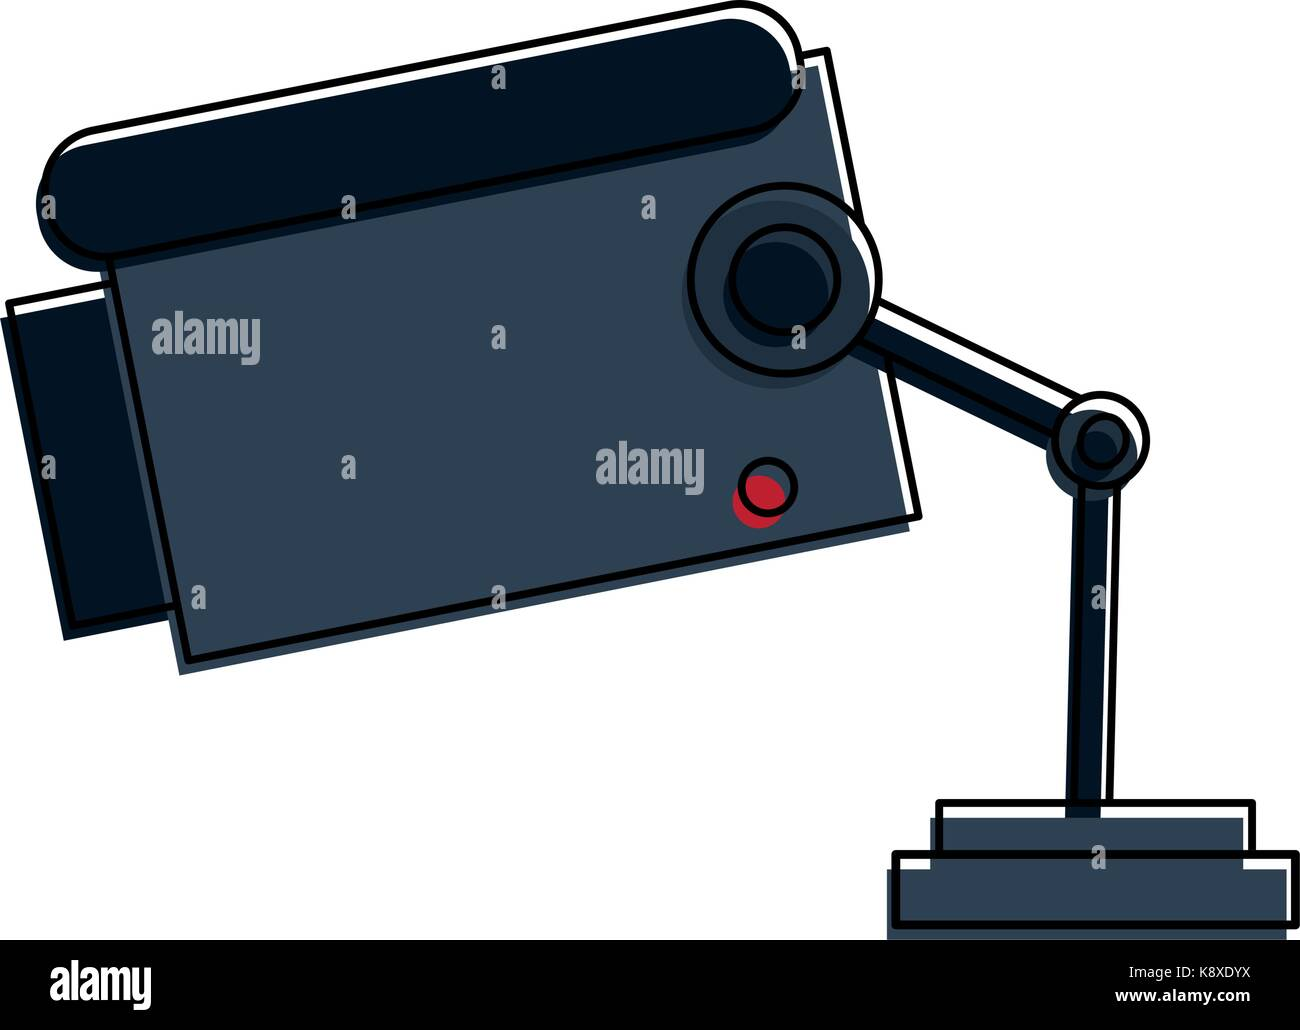 surveillance camera sideview icon image  - Stock Image